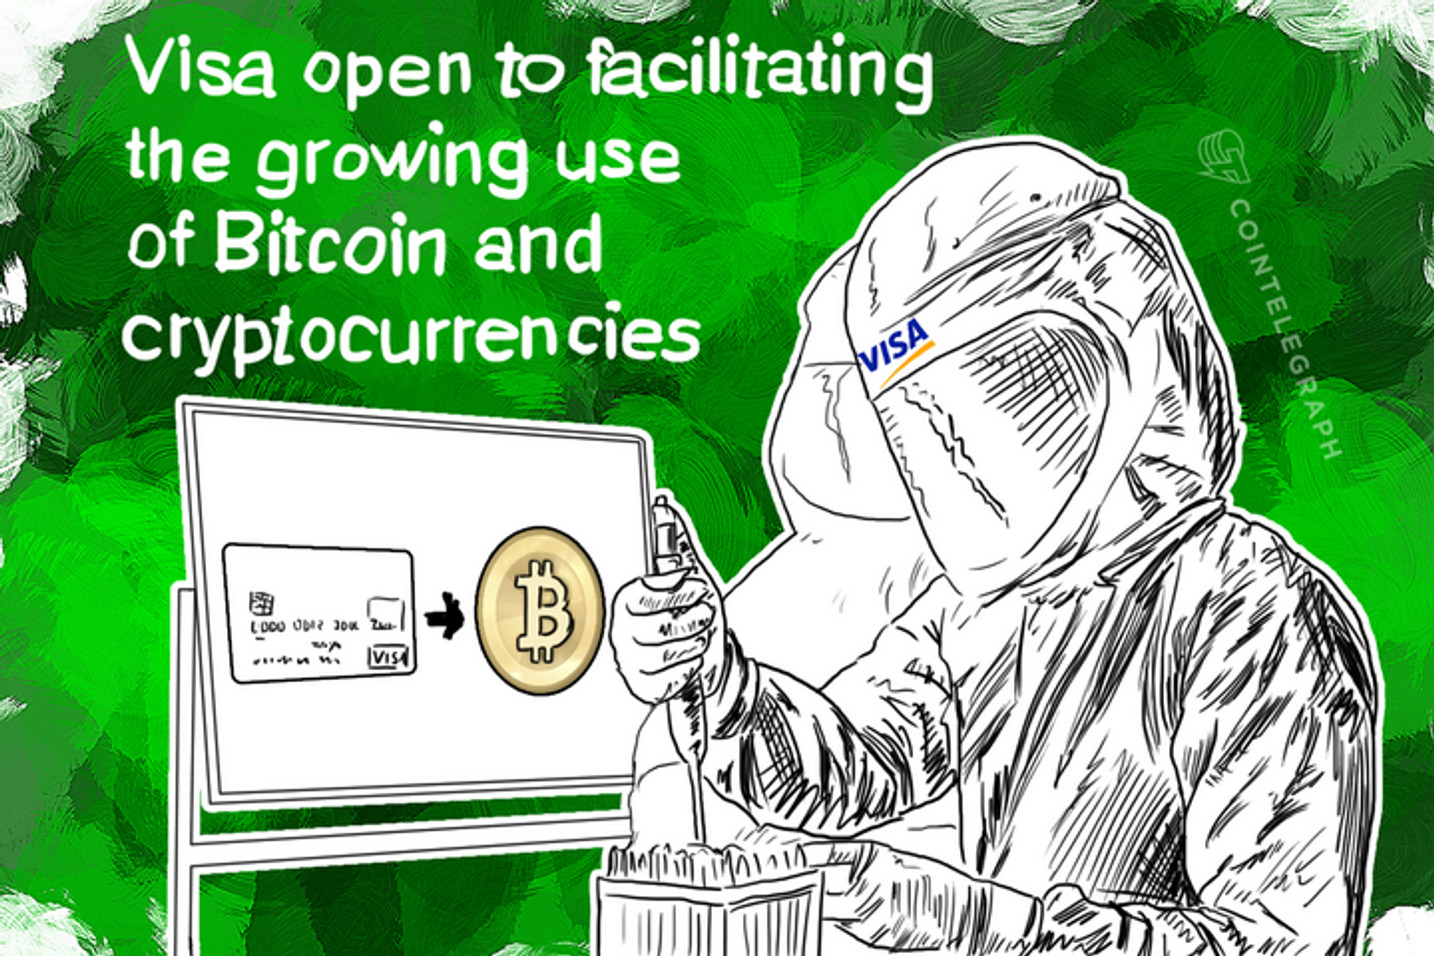 Visa open to facilitating the growing use of Bitcoin and cryptocurrencies